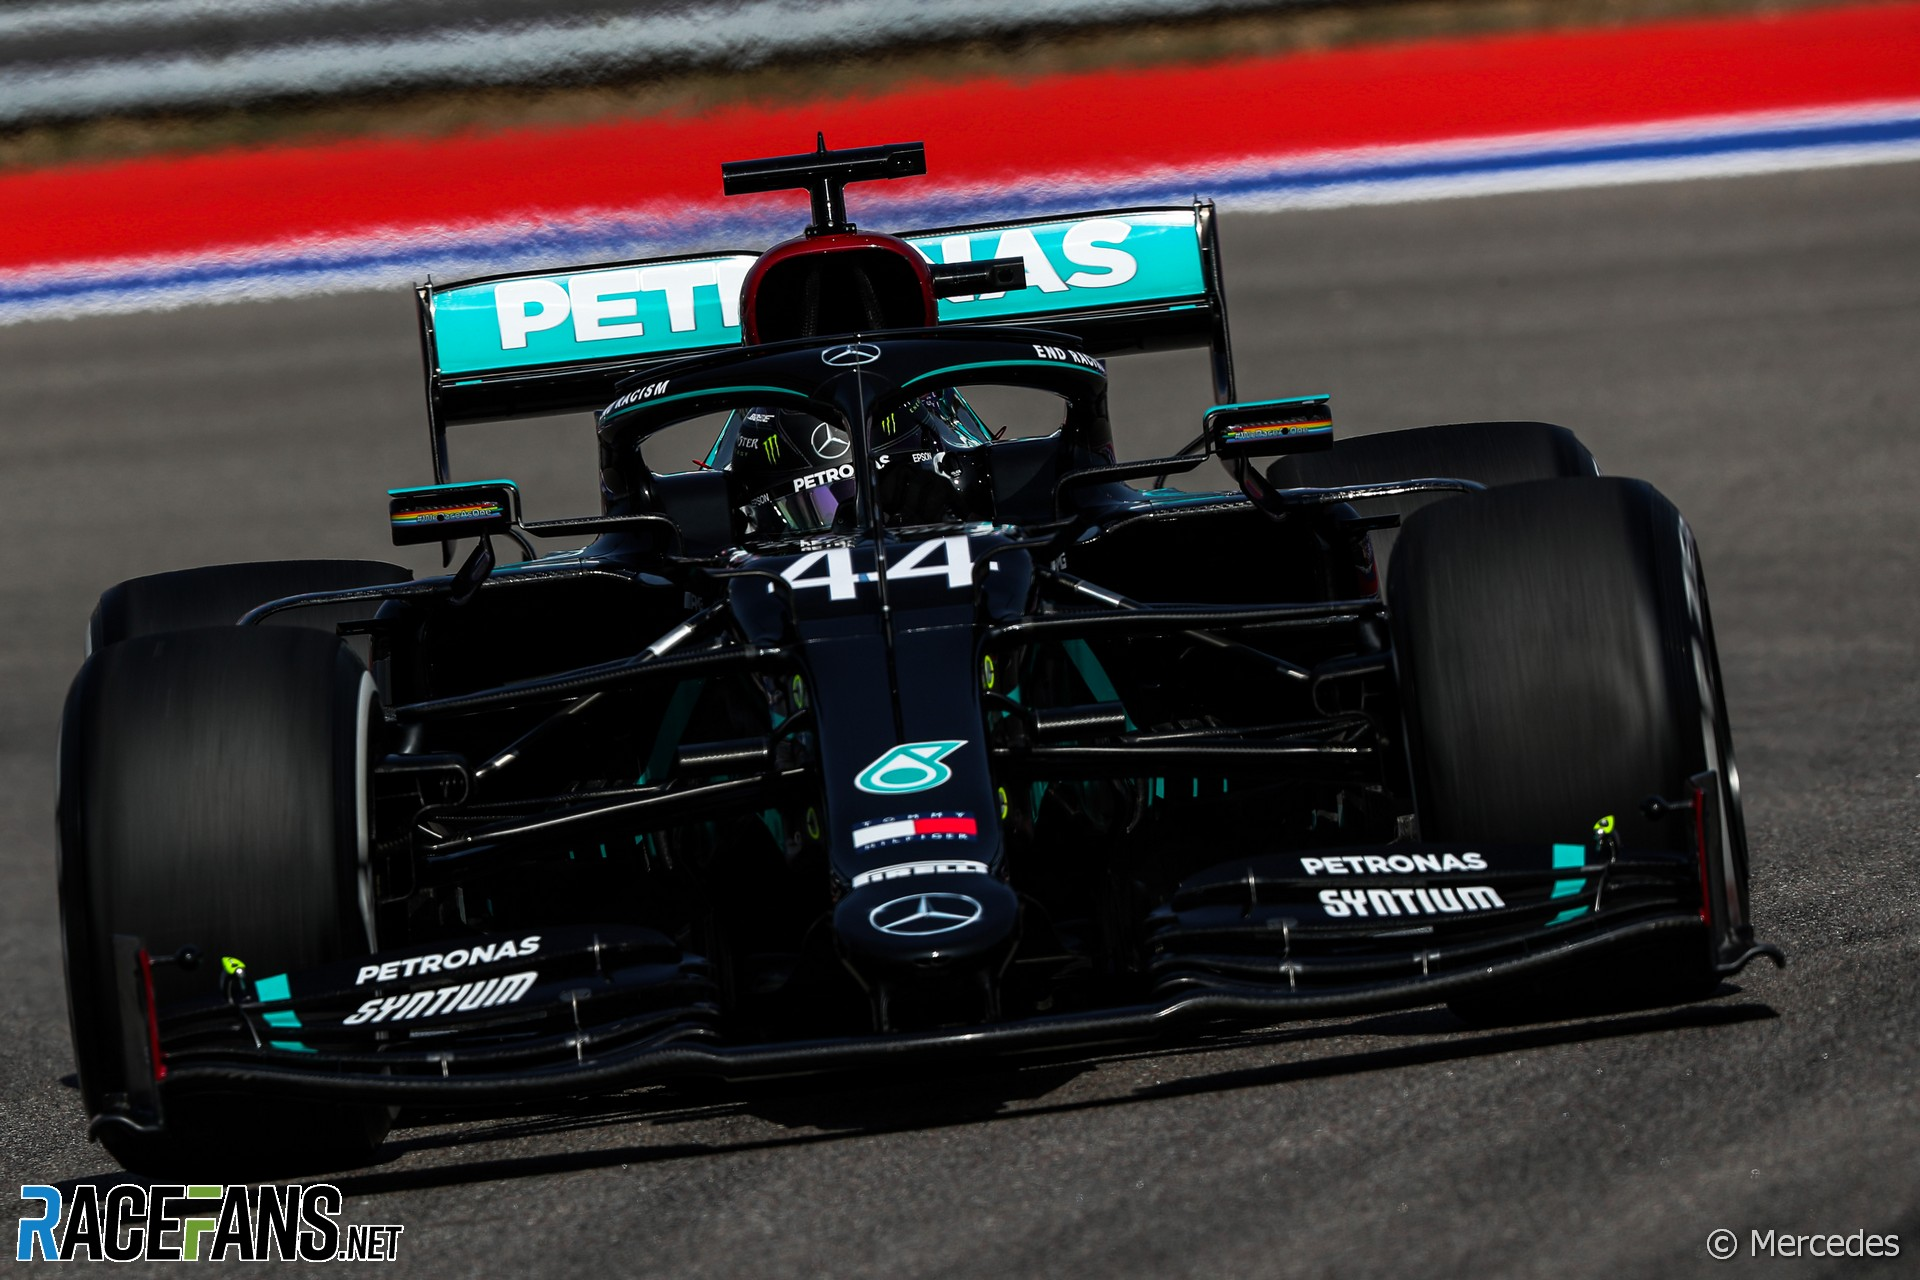 Hamilton beats Verstappen to pole after Q2 drama - but faces investigation · RaceFans